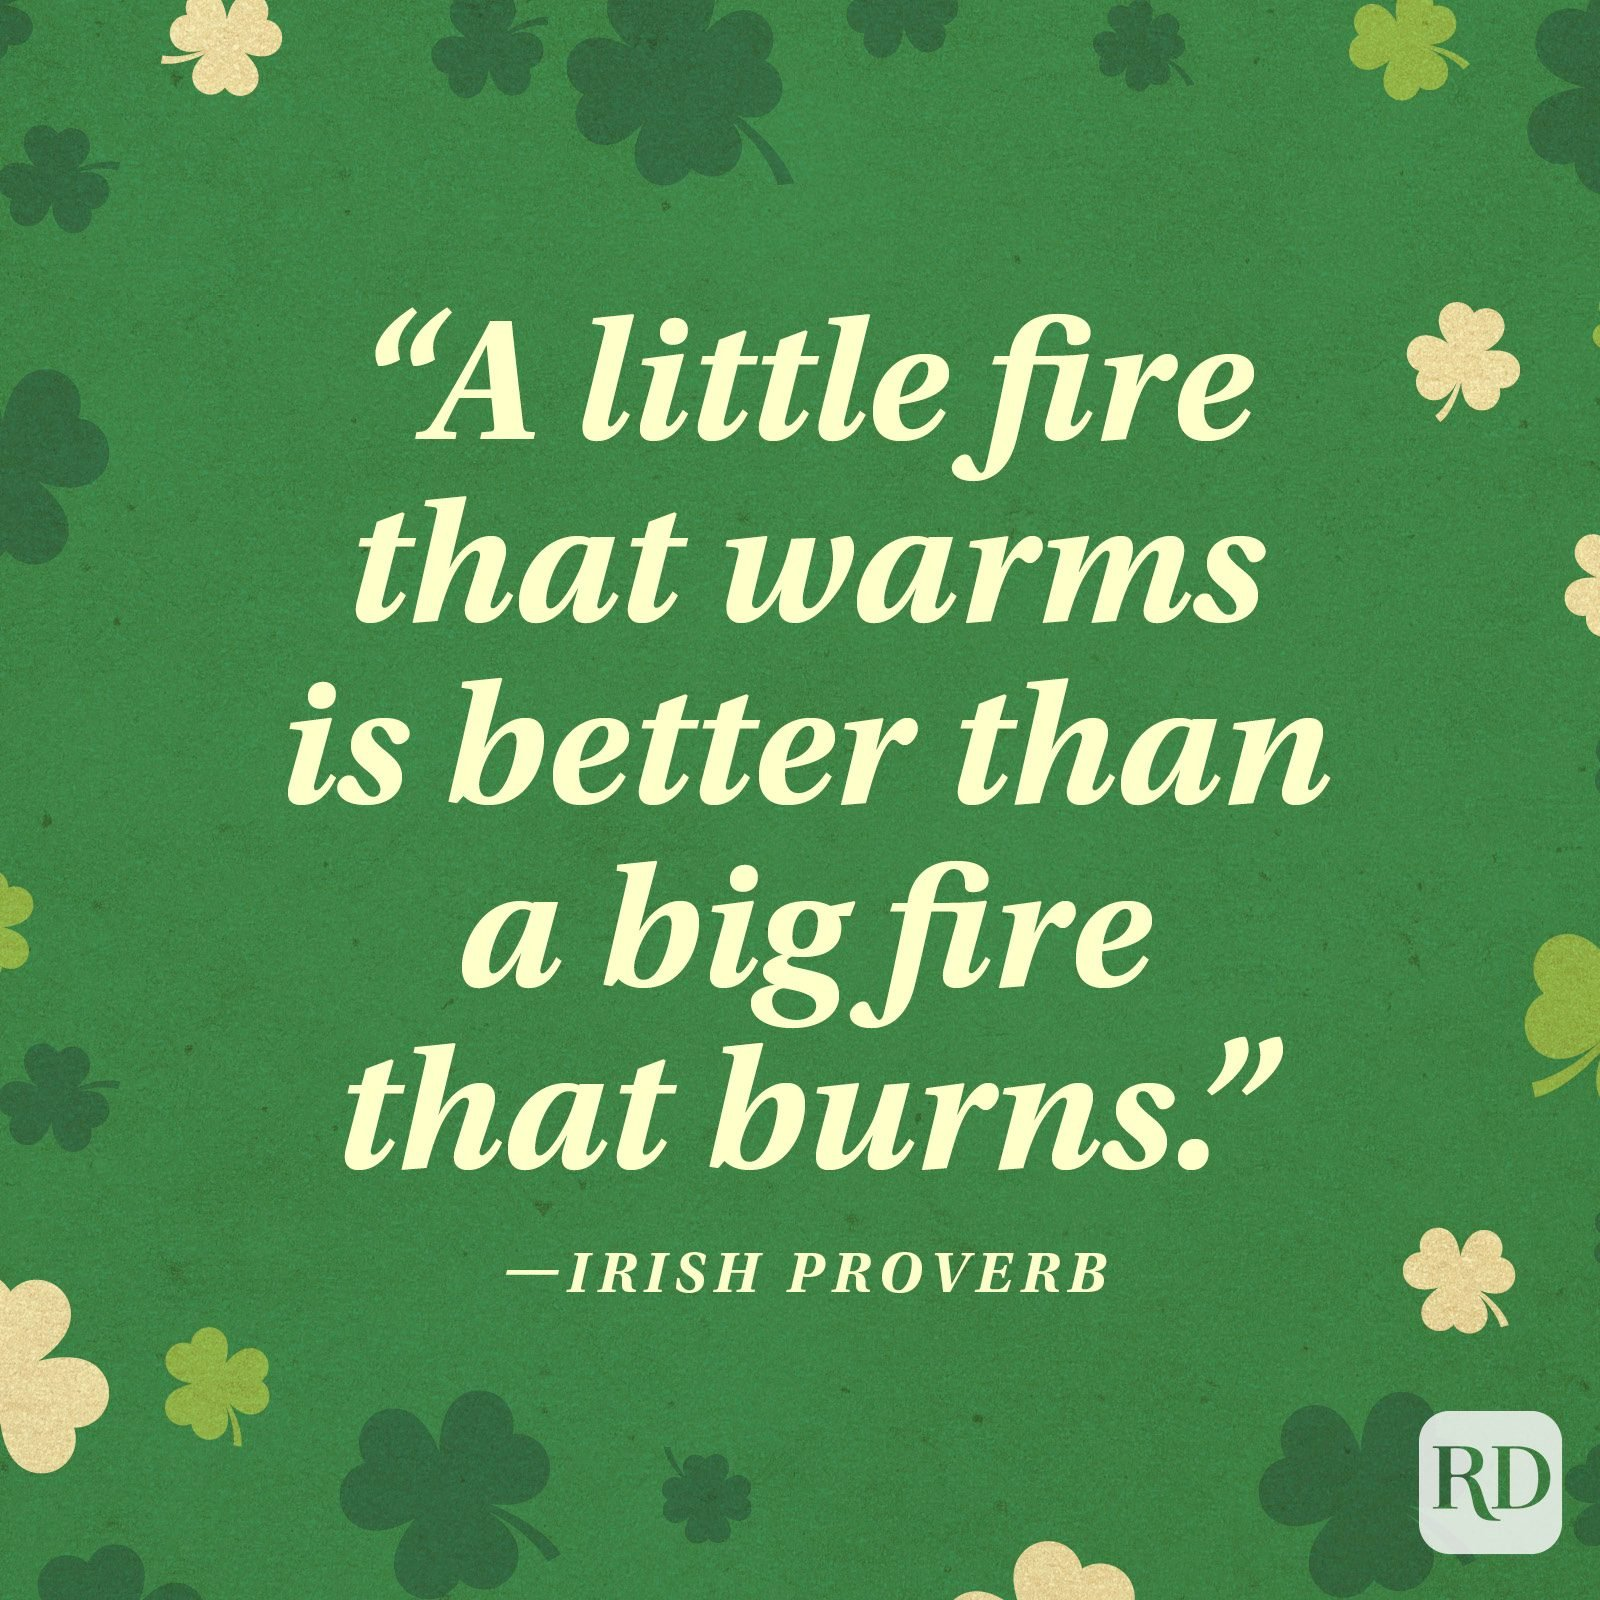 """A little fire that warms is better than a big fire that burns."" —Irish proverb"